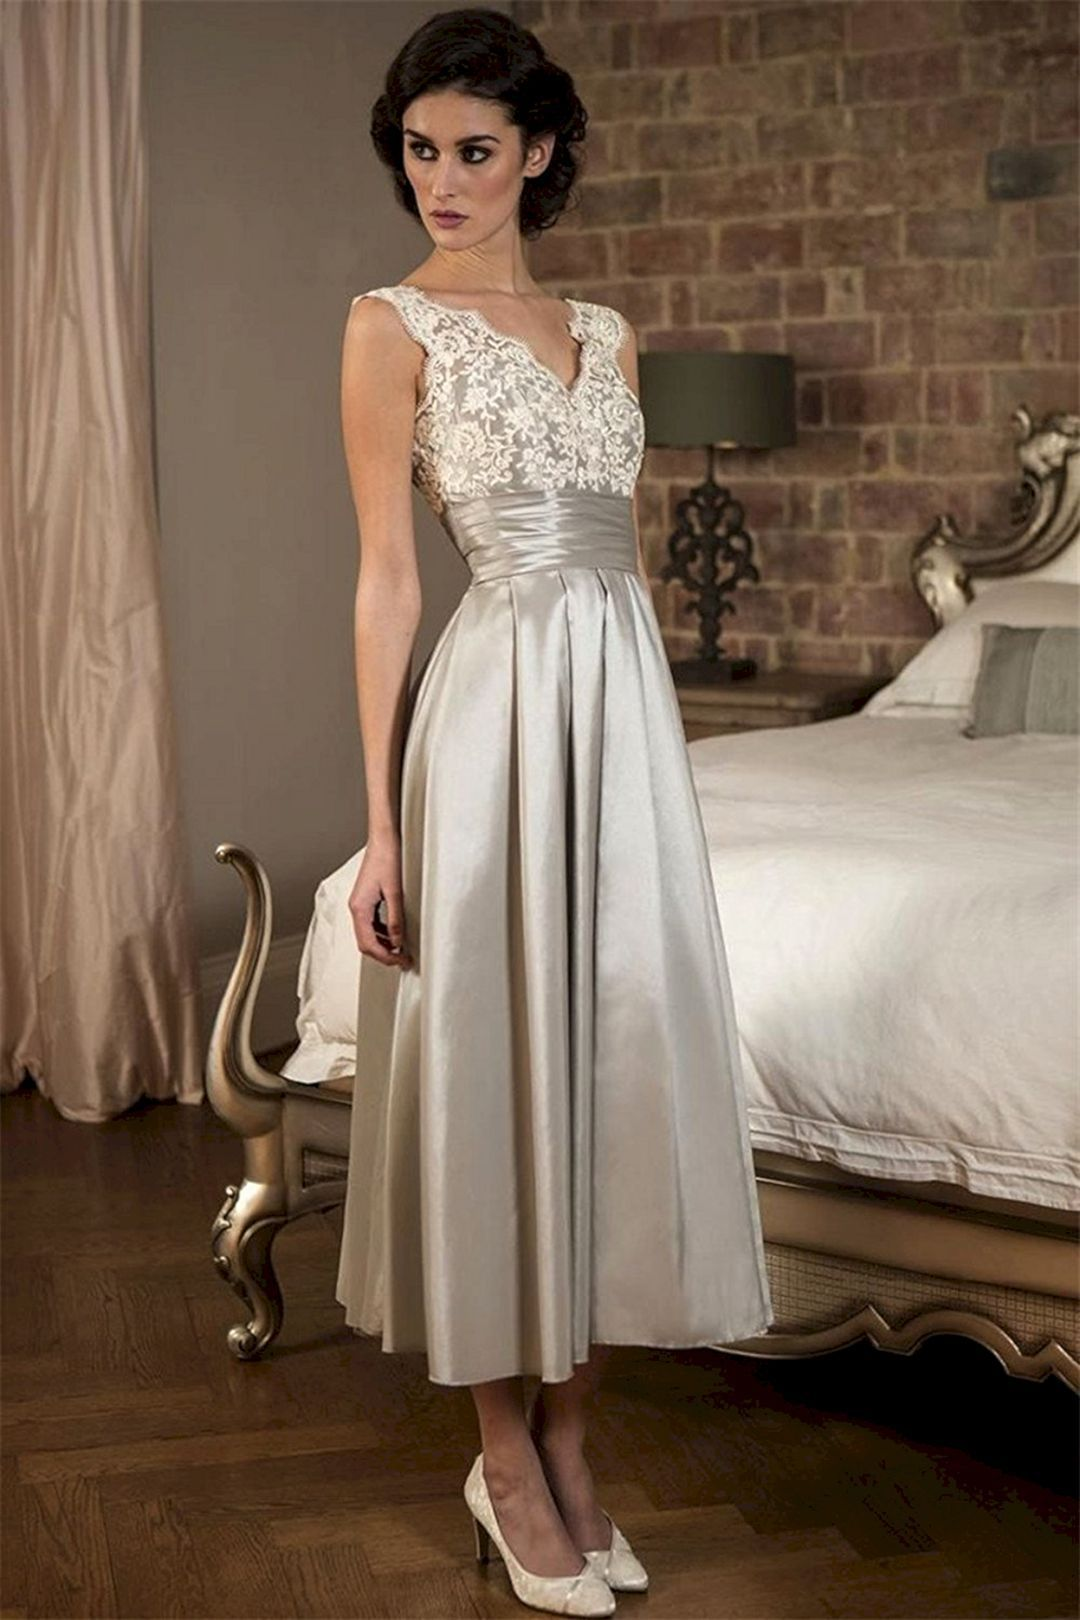 0214b76e715a Mother of the Groom Dresses 1 | Wedding ideas | Wedding dresses ...